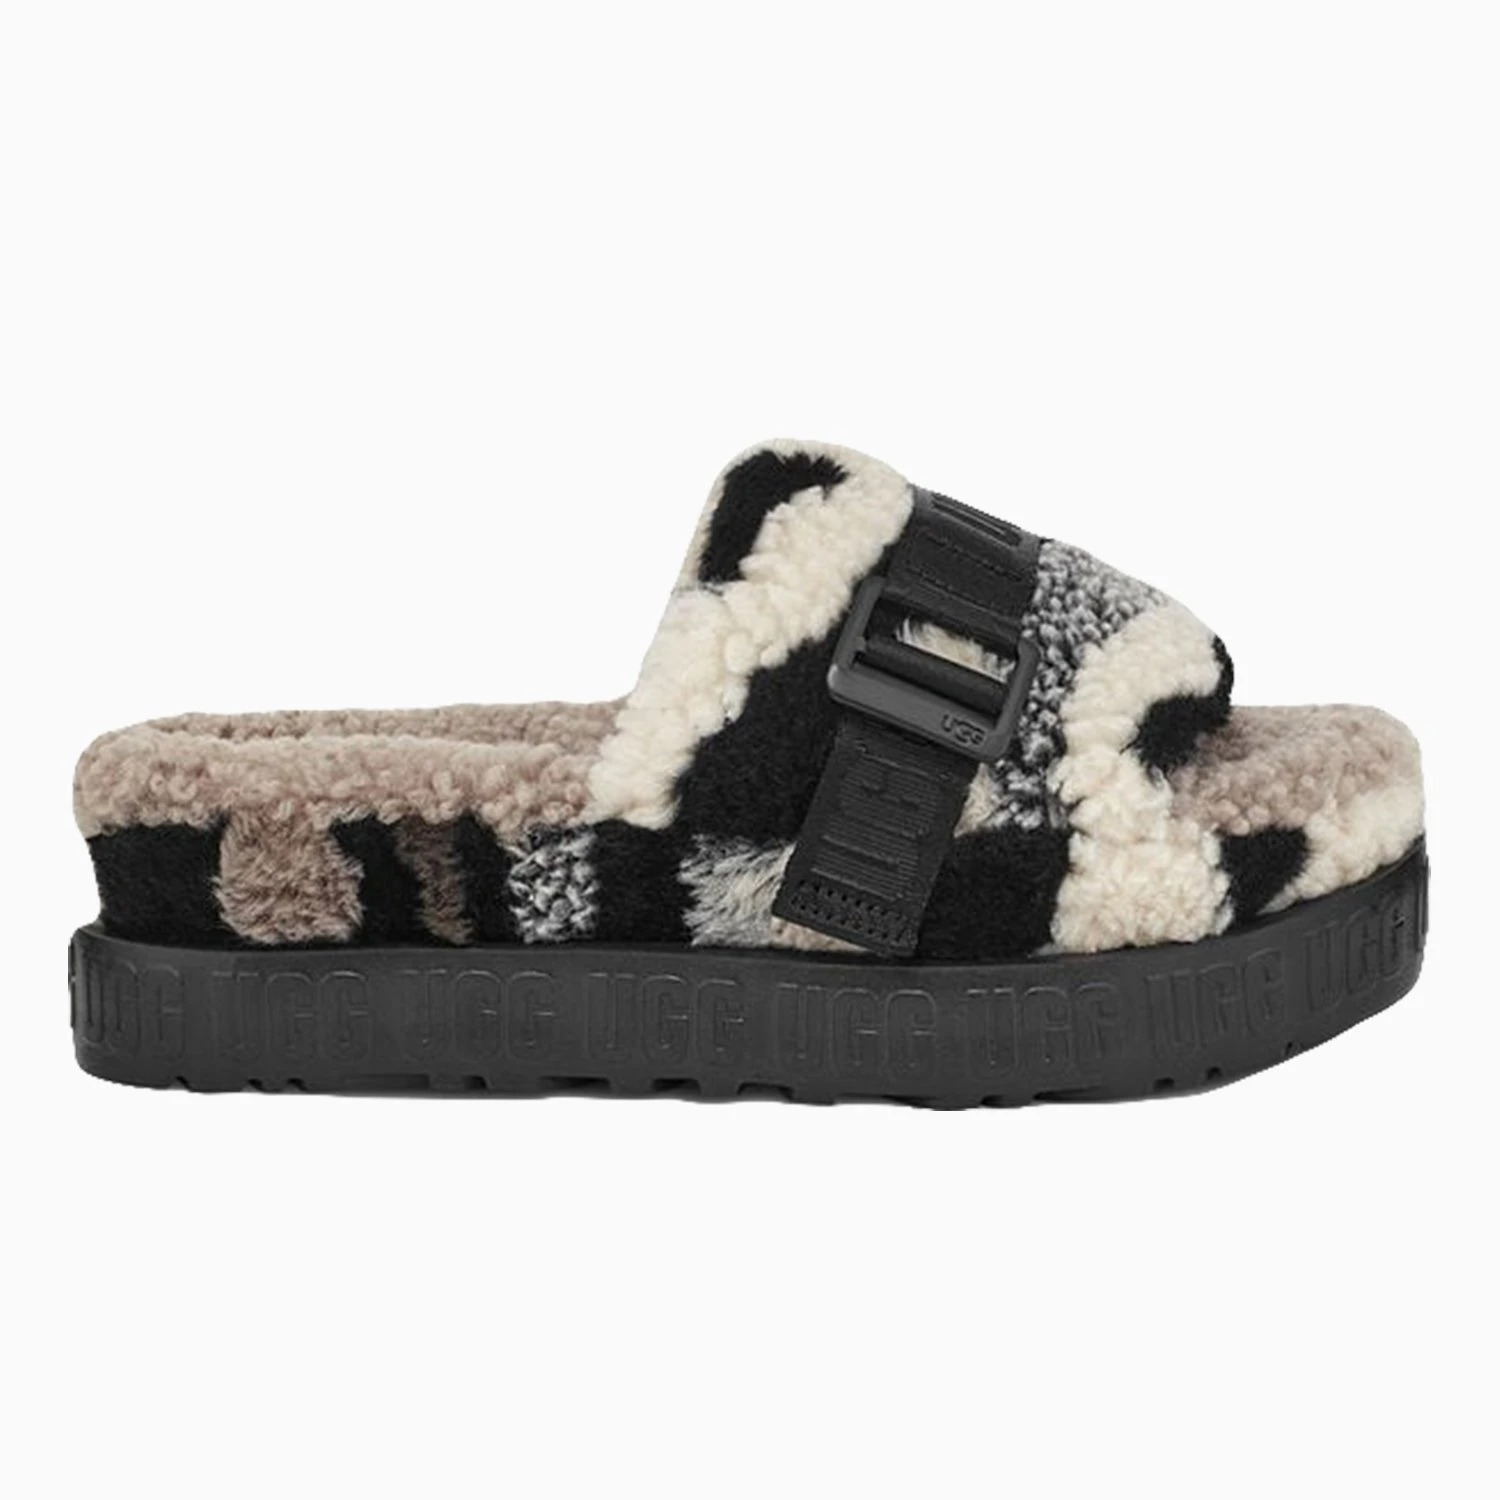 UGG Womens Fluffita Cali Collage Slide